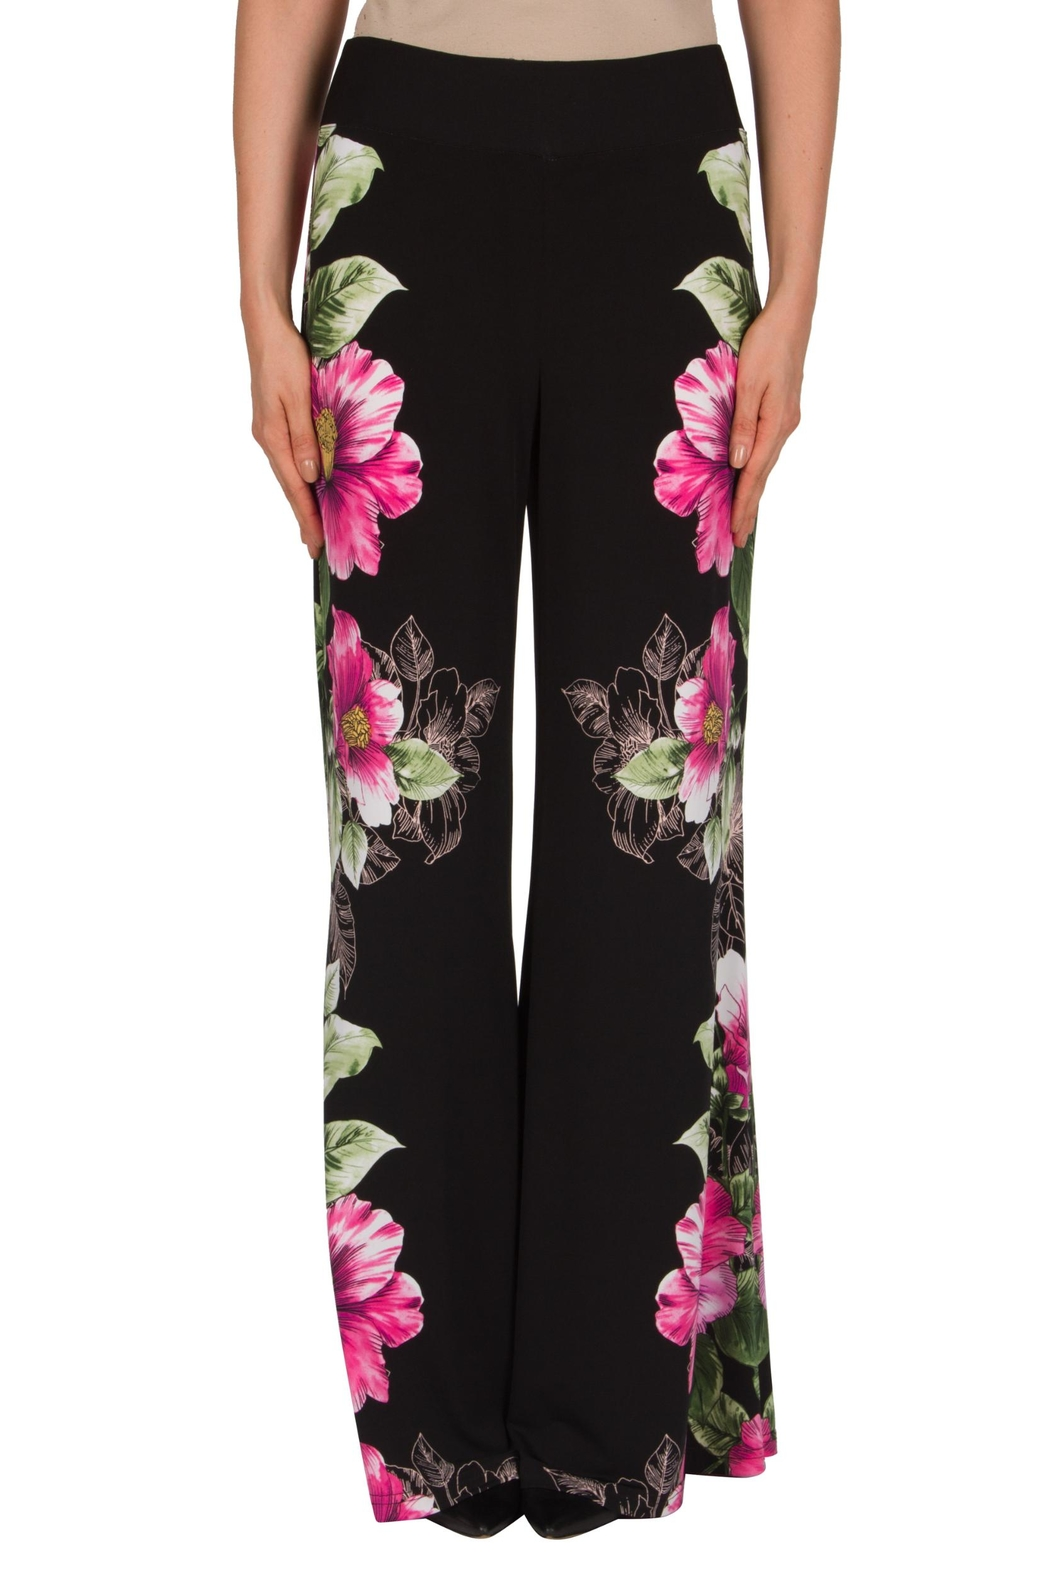 Joseph Ribkoff Floral Motif Pant - Front Cropped Image